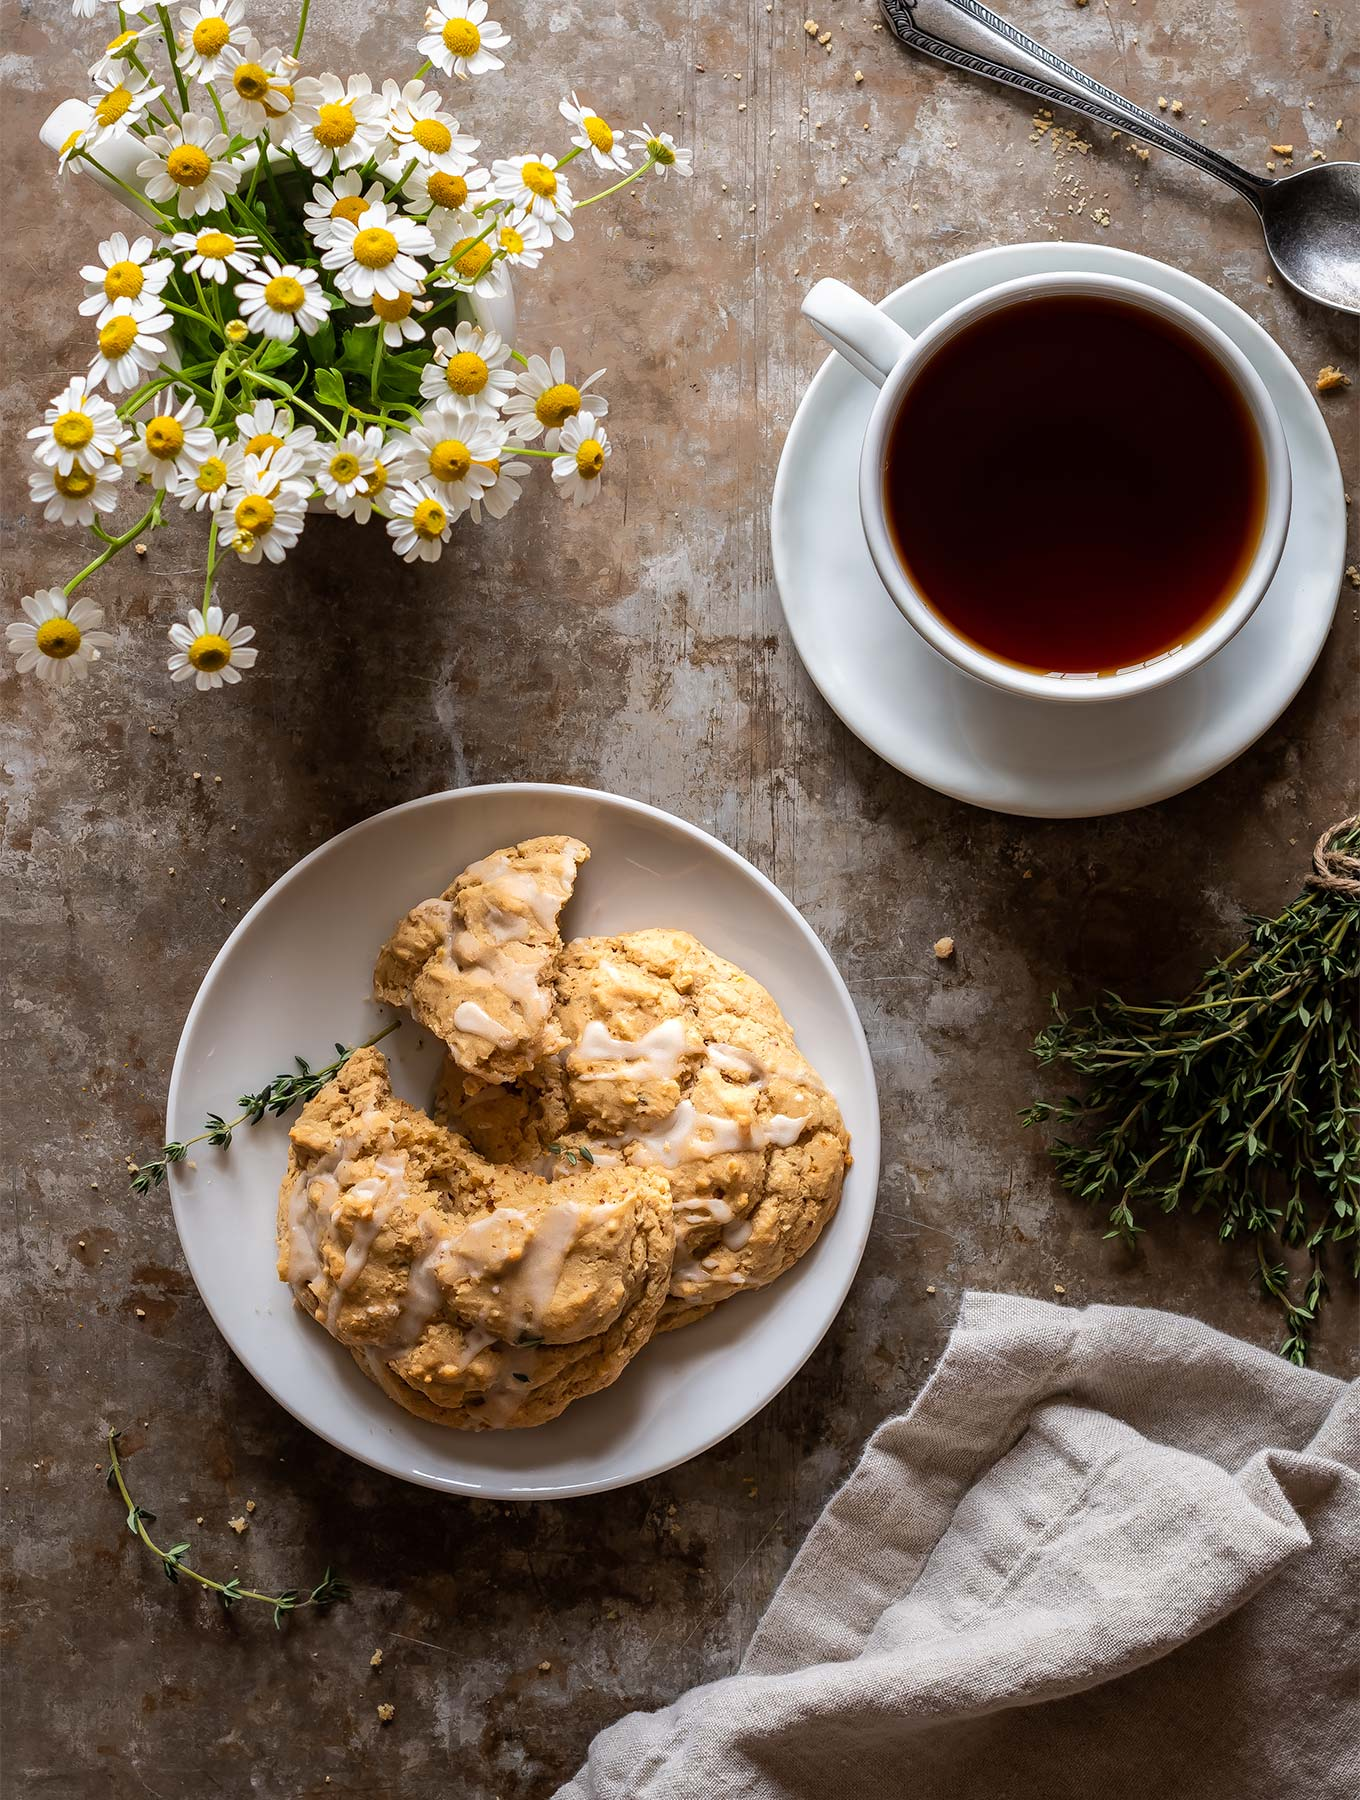 Overhead lemon thyme scones with a cup of tea and flowers